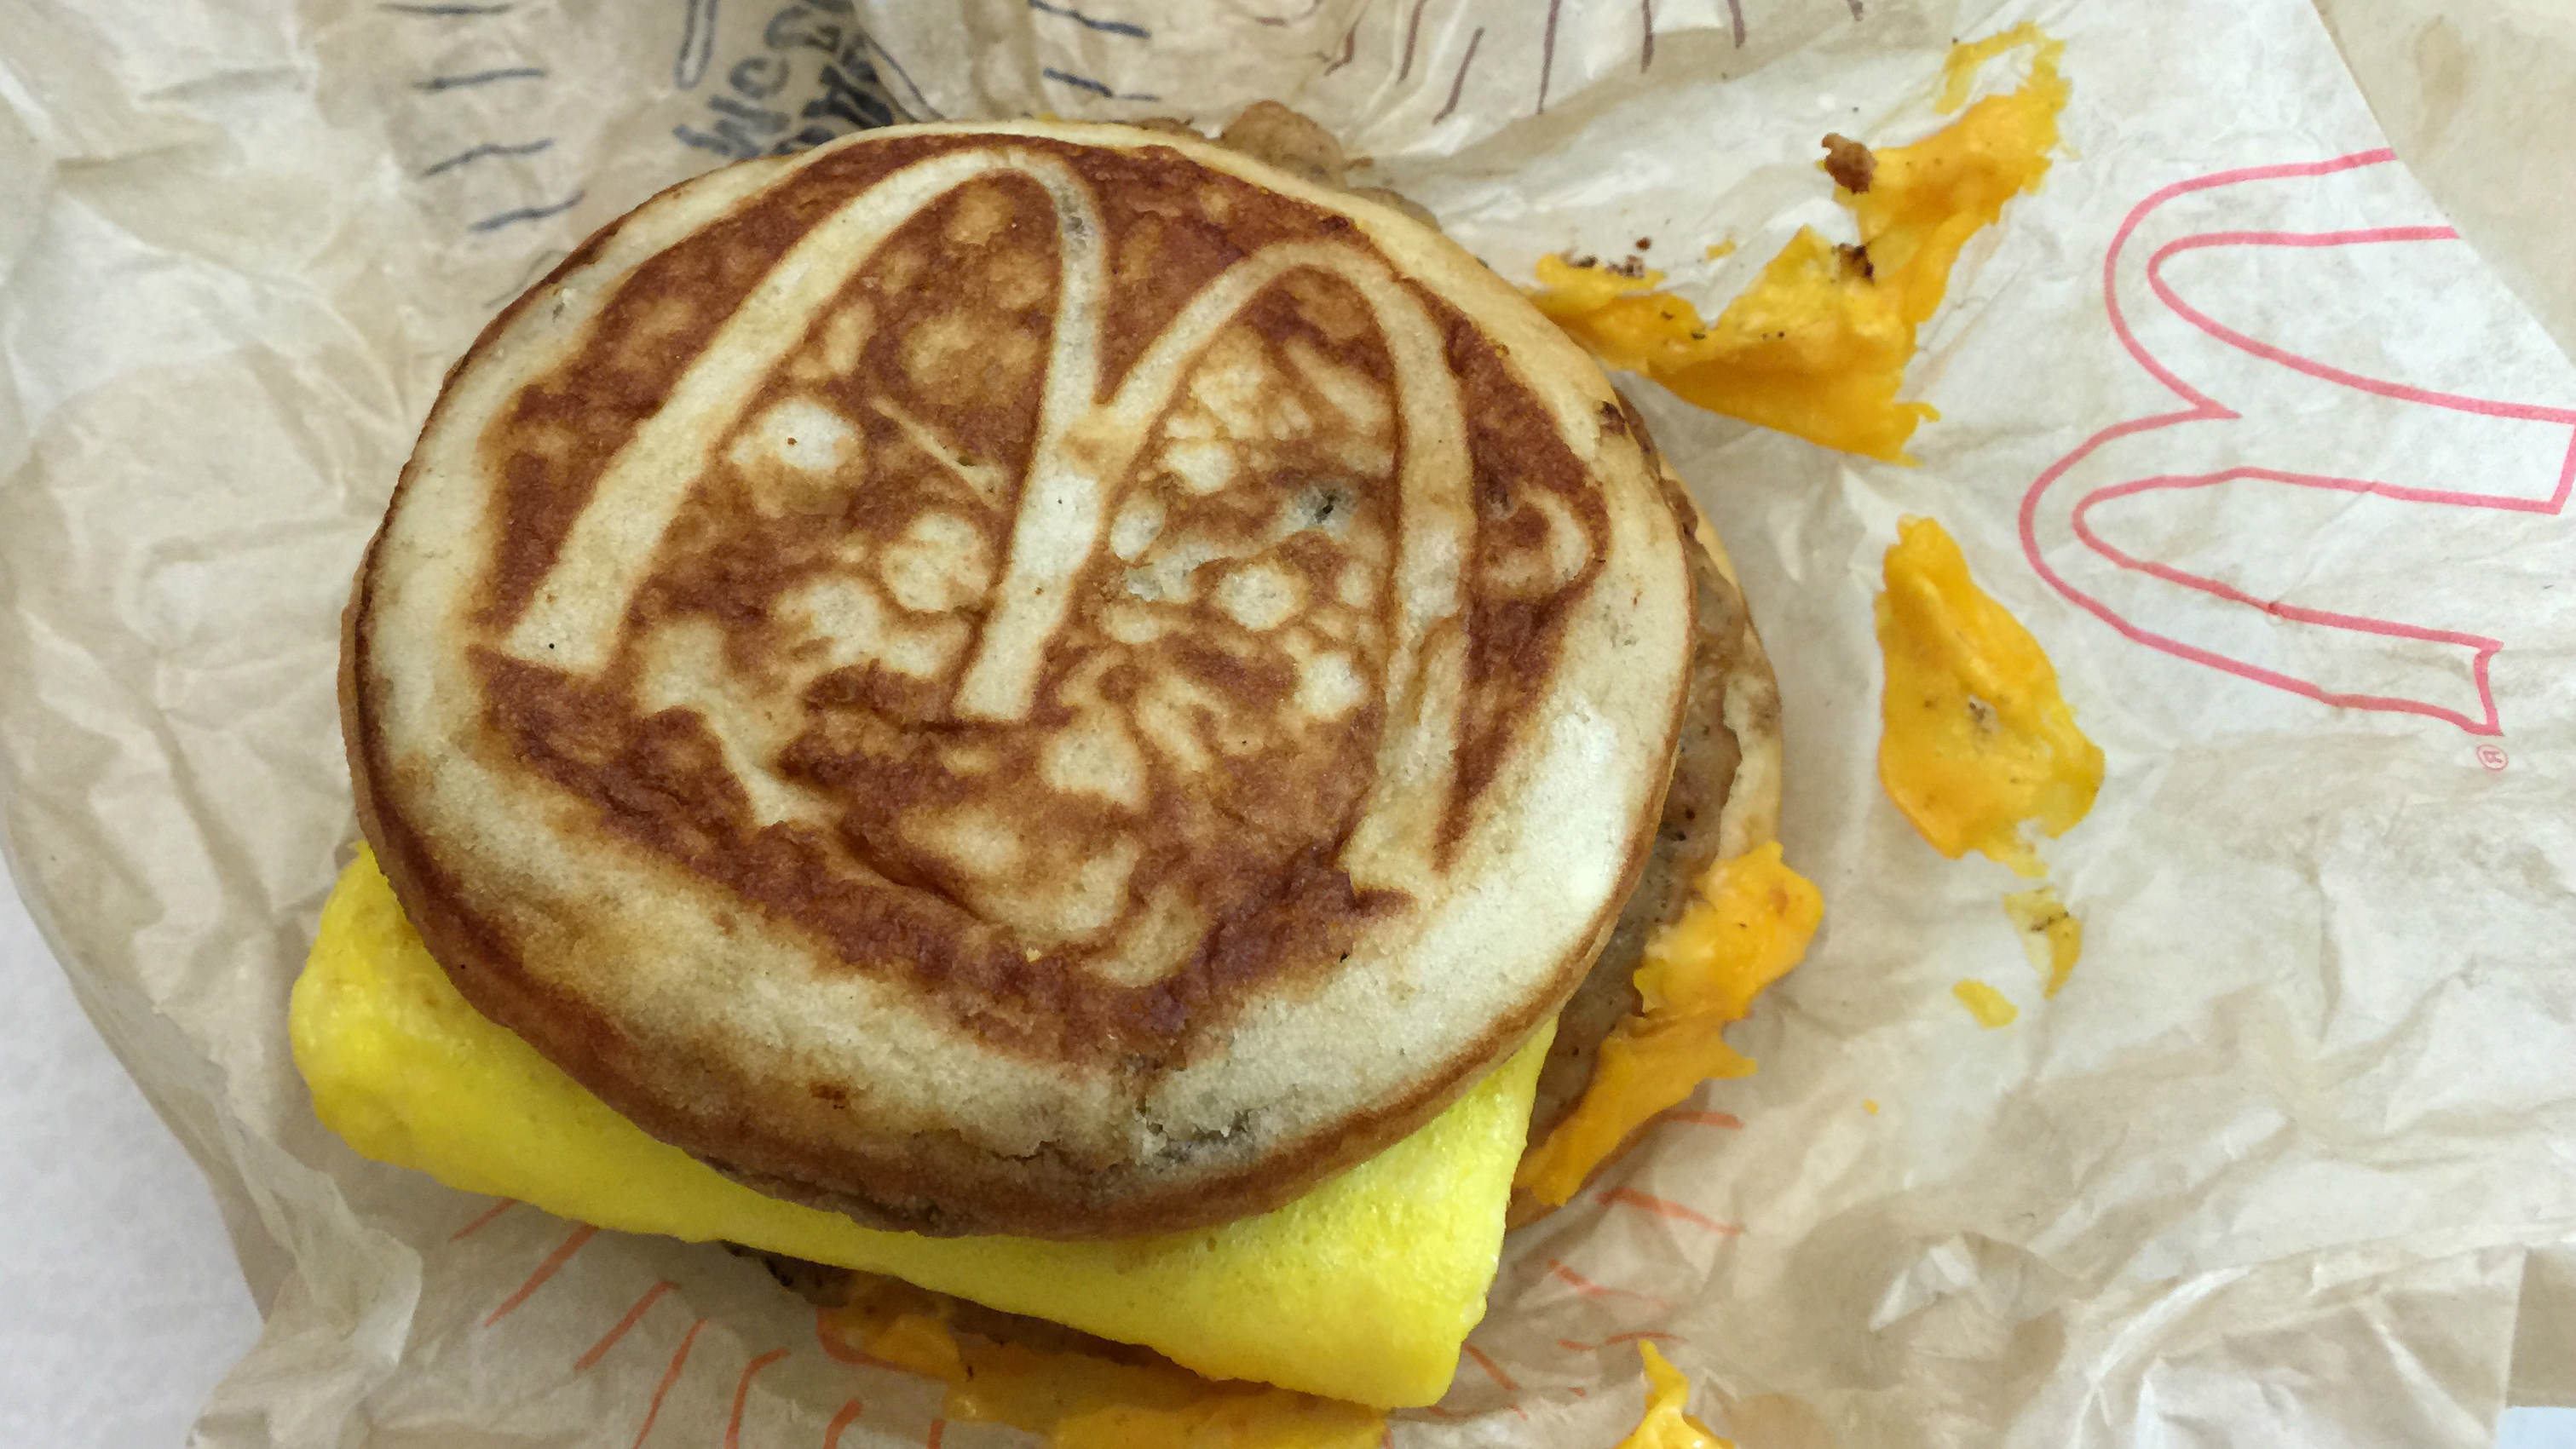 People are ordering Egg McMuffins as side items.